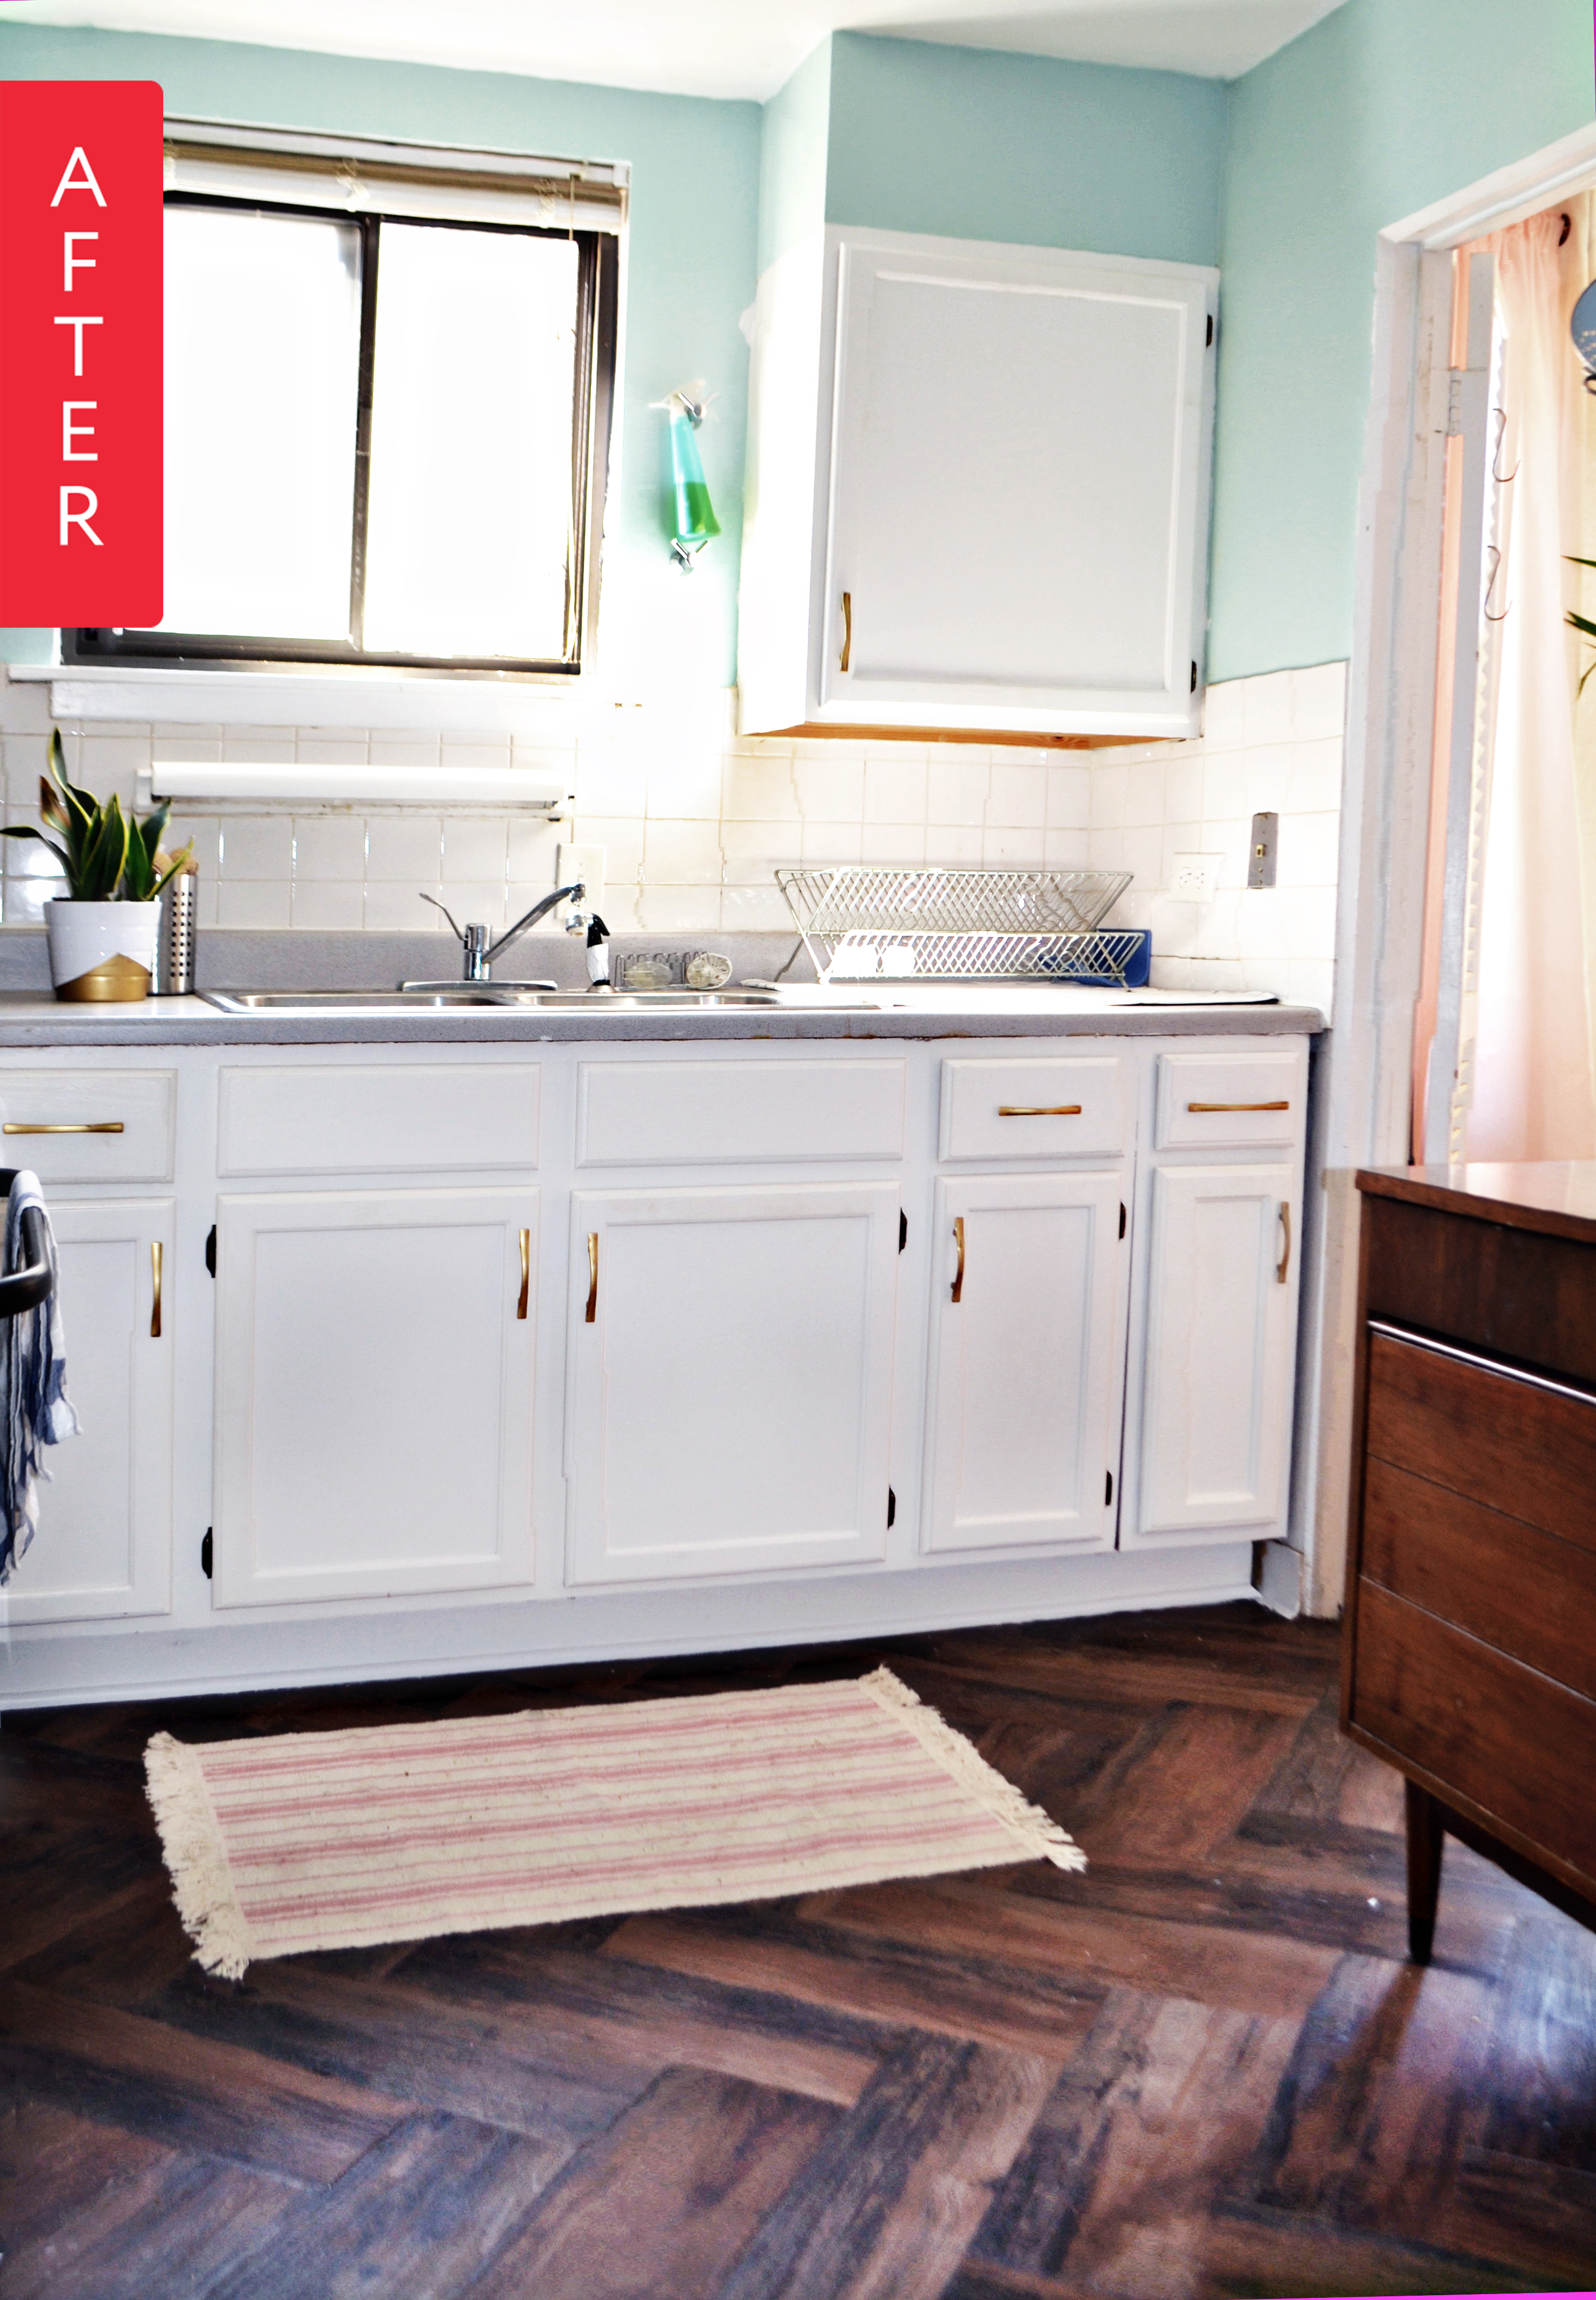 Before & After An Unbelievably Chic Rental Kitchen Makeover ...